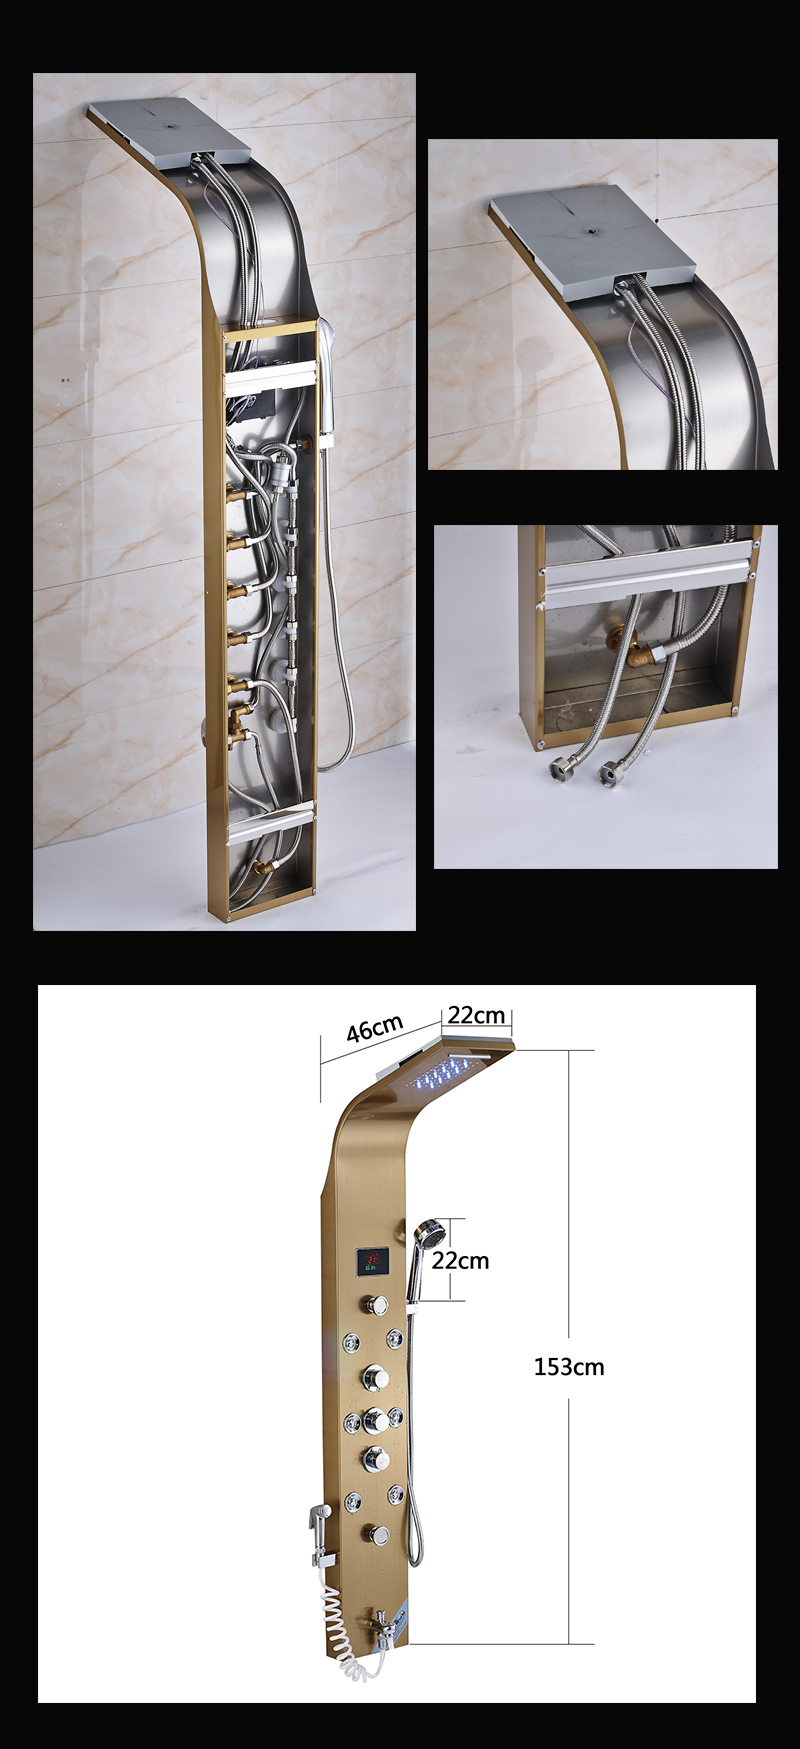 Bathroom Golden Shower Column Panel Wall Mount Digital Temperature Screen led light Shower Faucet System Massage Jet Shower Set